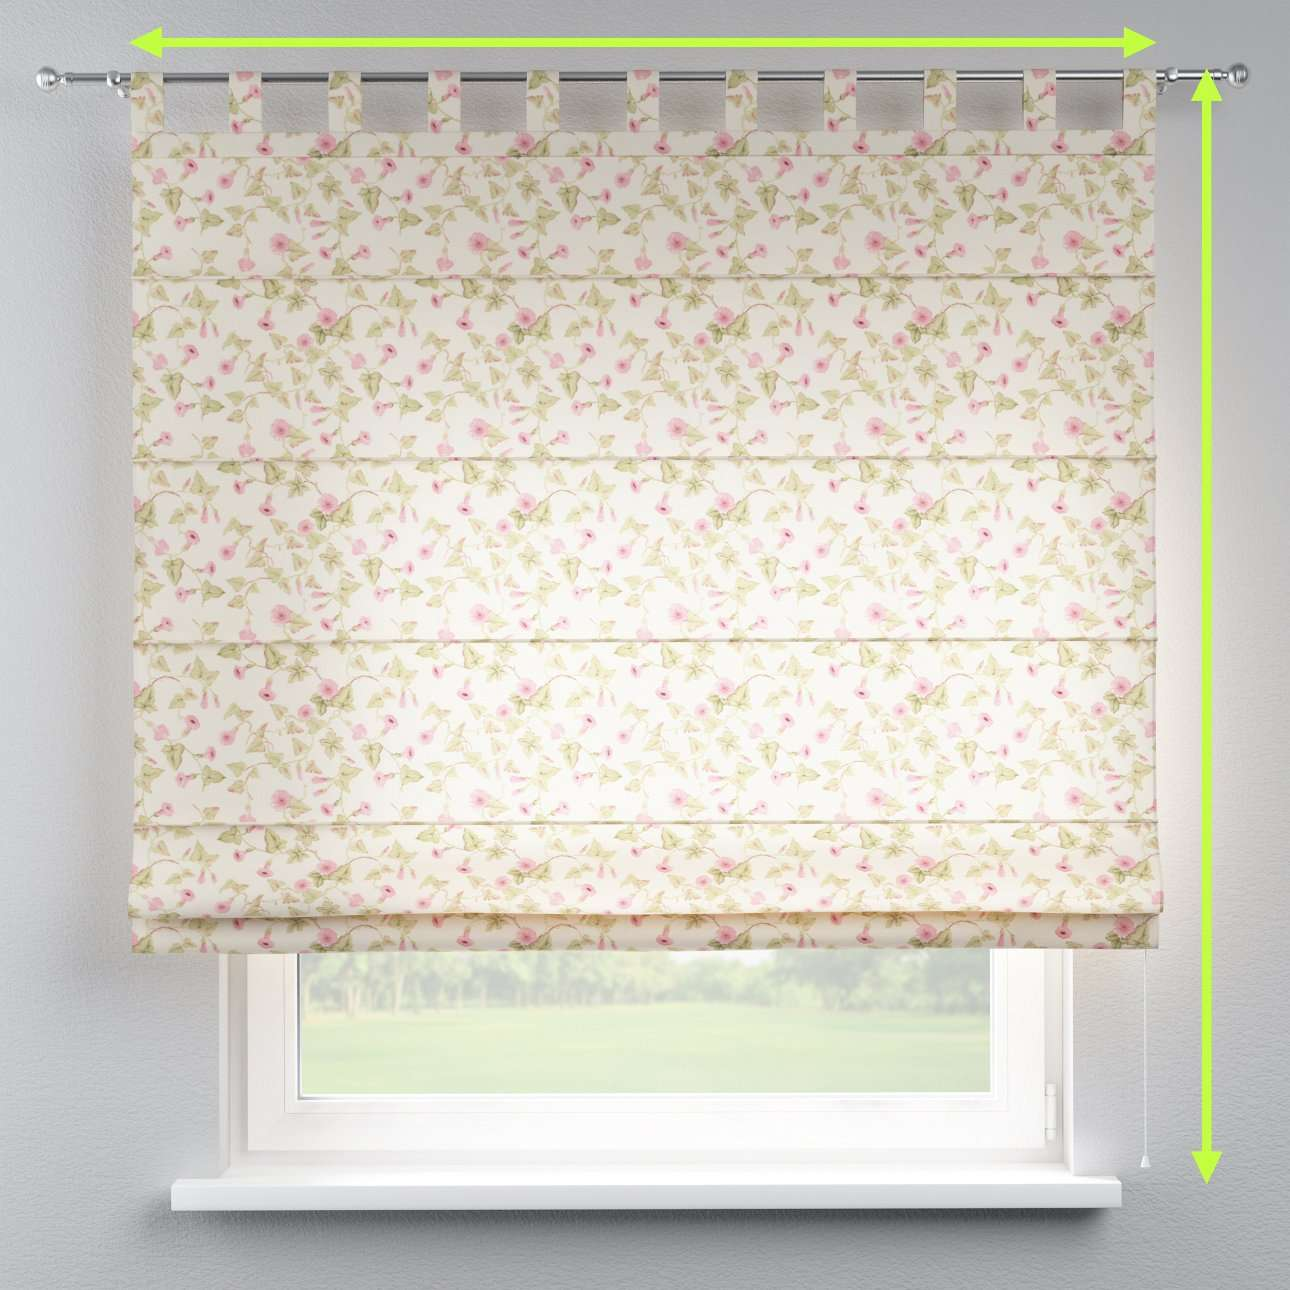 Verona tab top roman blind in collection Mirella, fabric: 140-41